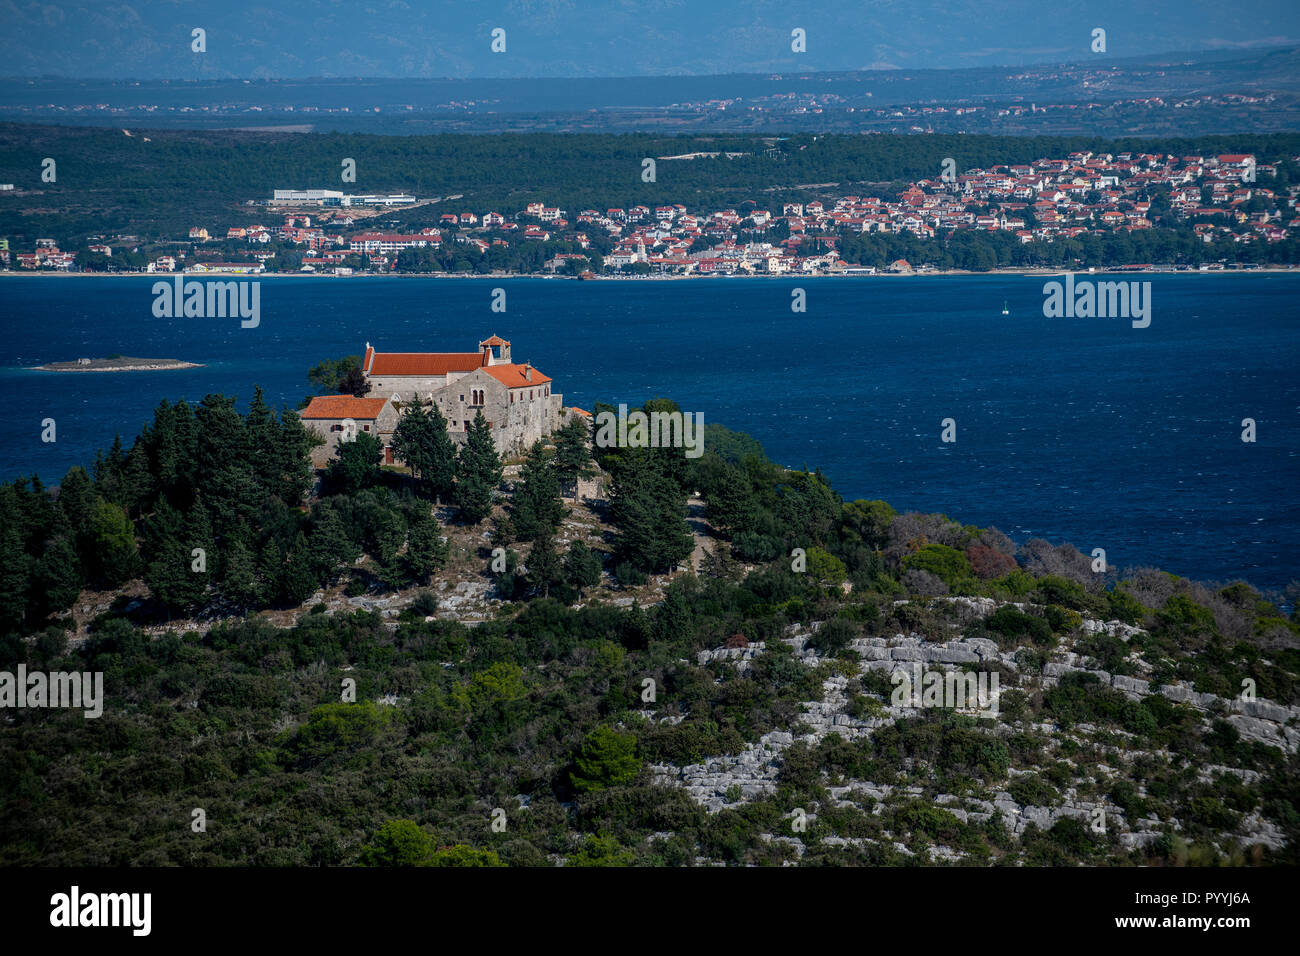 Church and Benedictine Monastery of Saints Cosmas and Damian on the island of Pasman with Sveti Filip i Jakov and Biograd na Moru in the background. - Stock Image